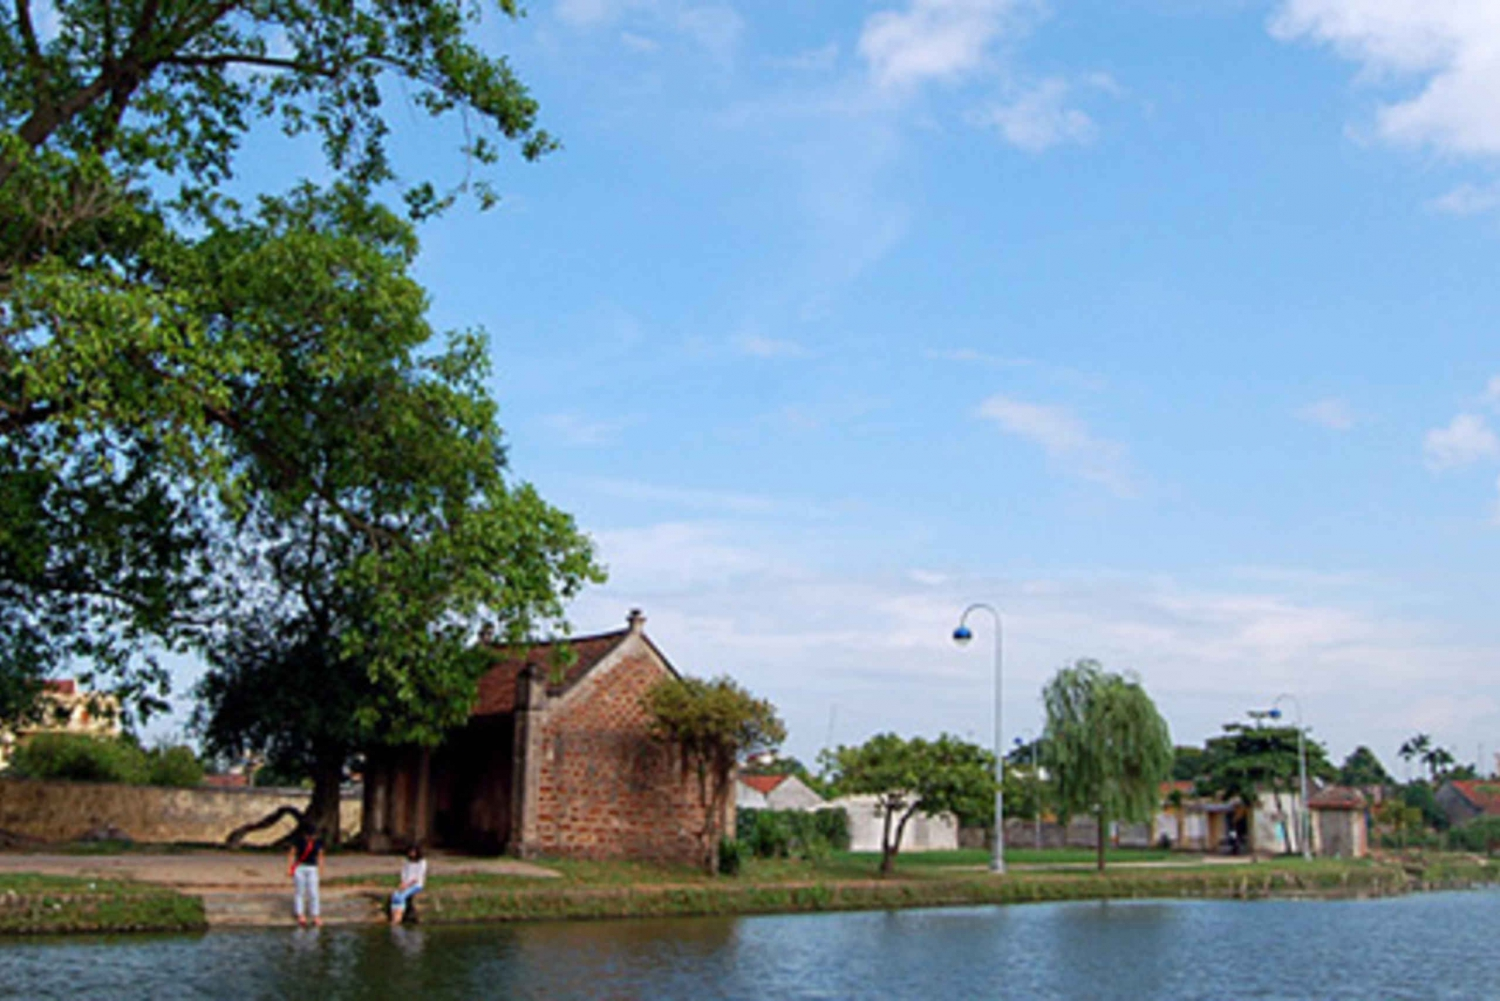 Hanoi: 8-Hour Countryside Tour to Duong Lam Village